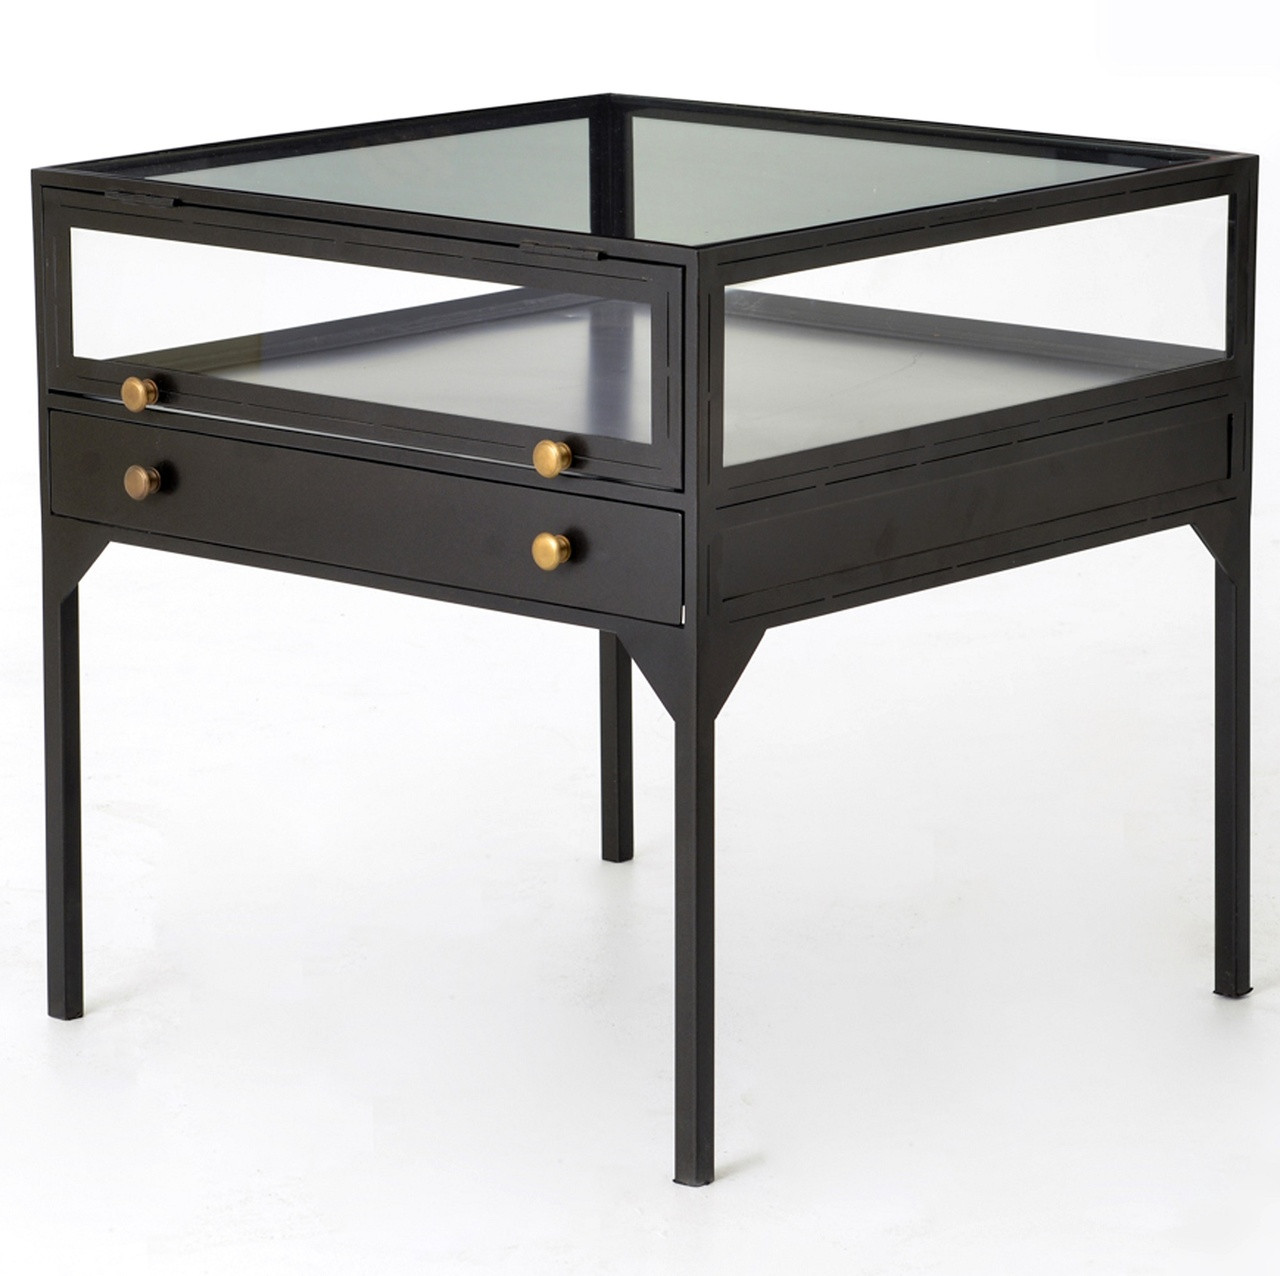 Black End Tables With Drawer Shadow Box Industrial Metal And Glass Side Table